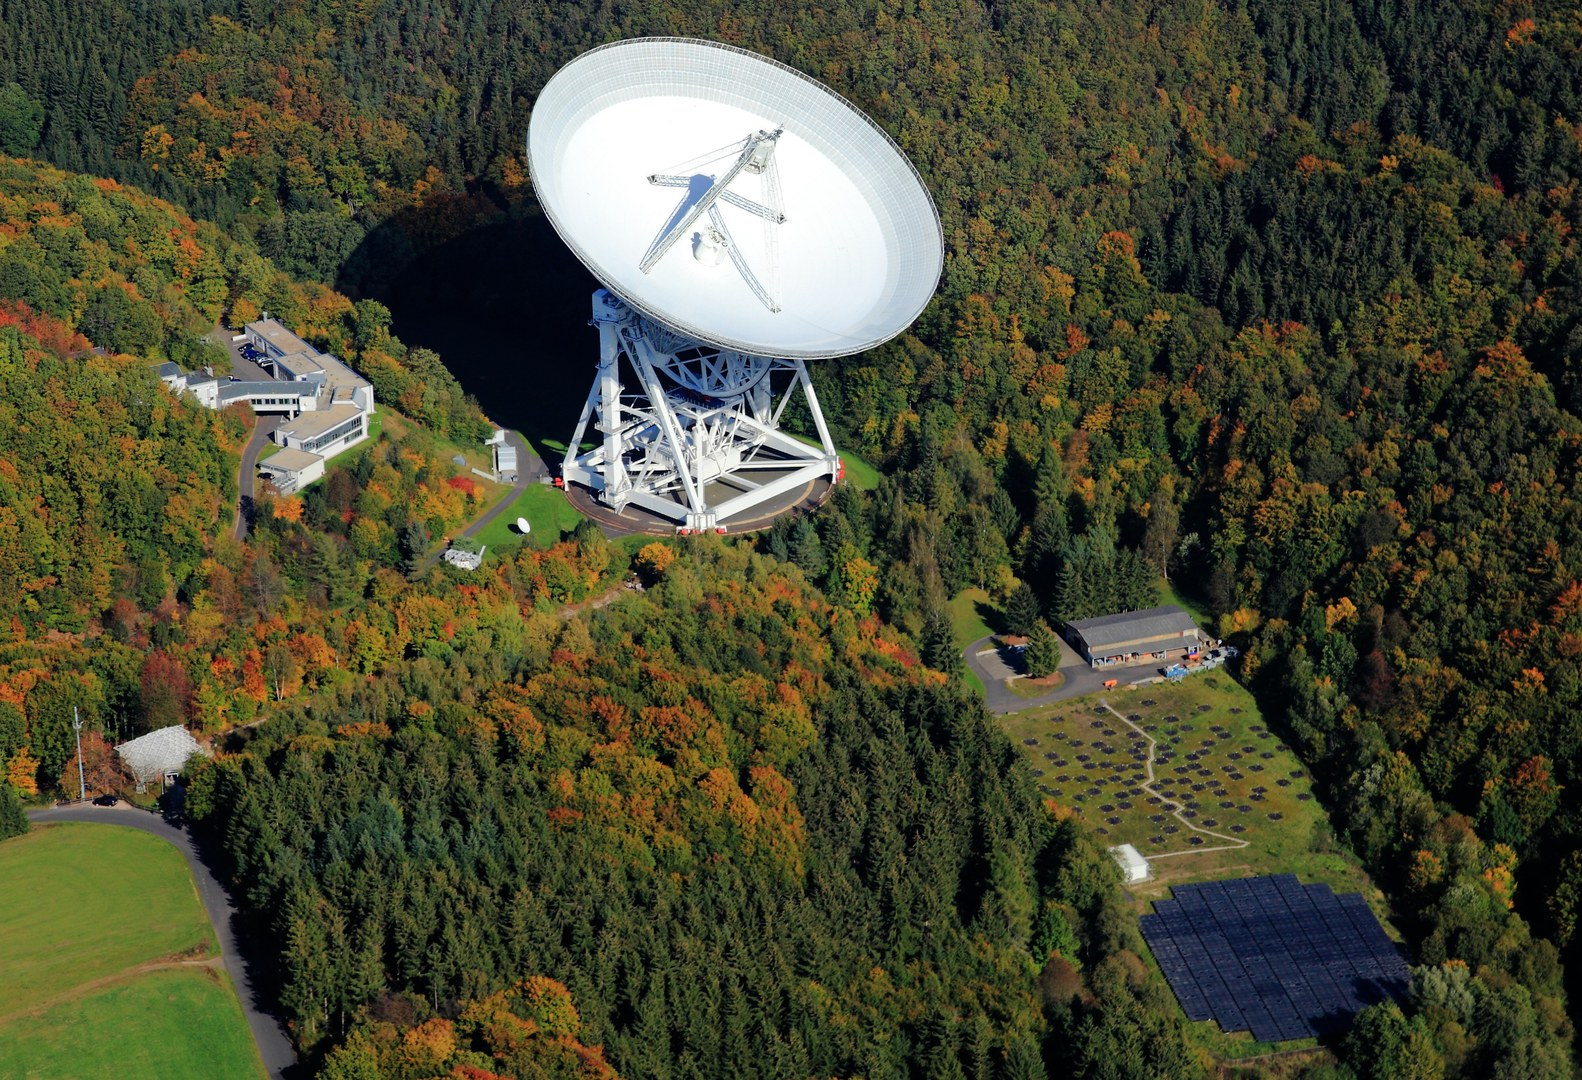 The aerial view shows the Effelsberg radio observatory